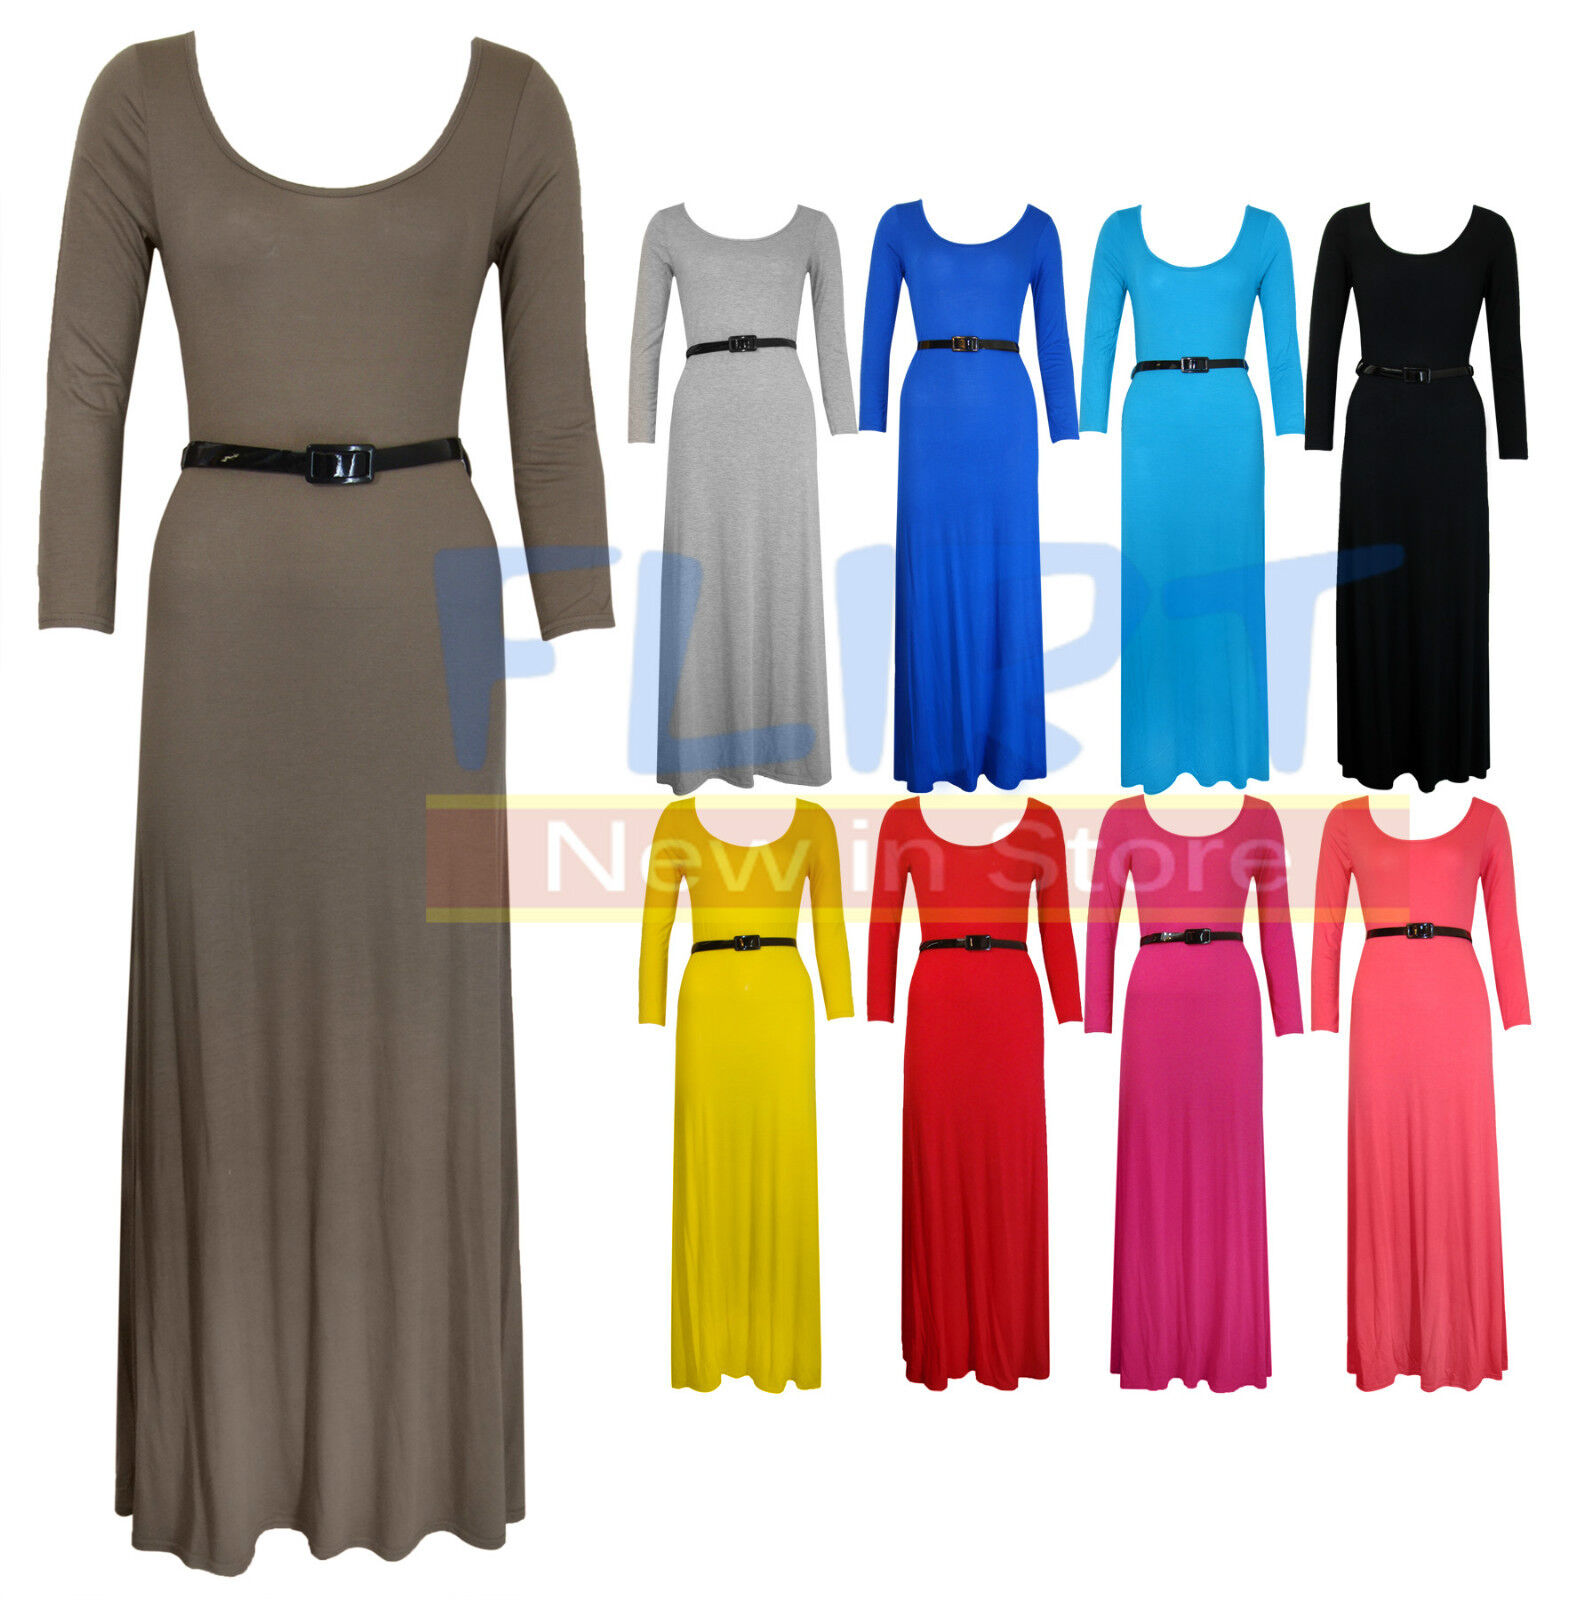 WOMENS LONG SLEEVE JERSEY BELTED FULL MAXI DRESS LADIES TOP SKIRT DRESSES NEW